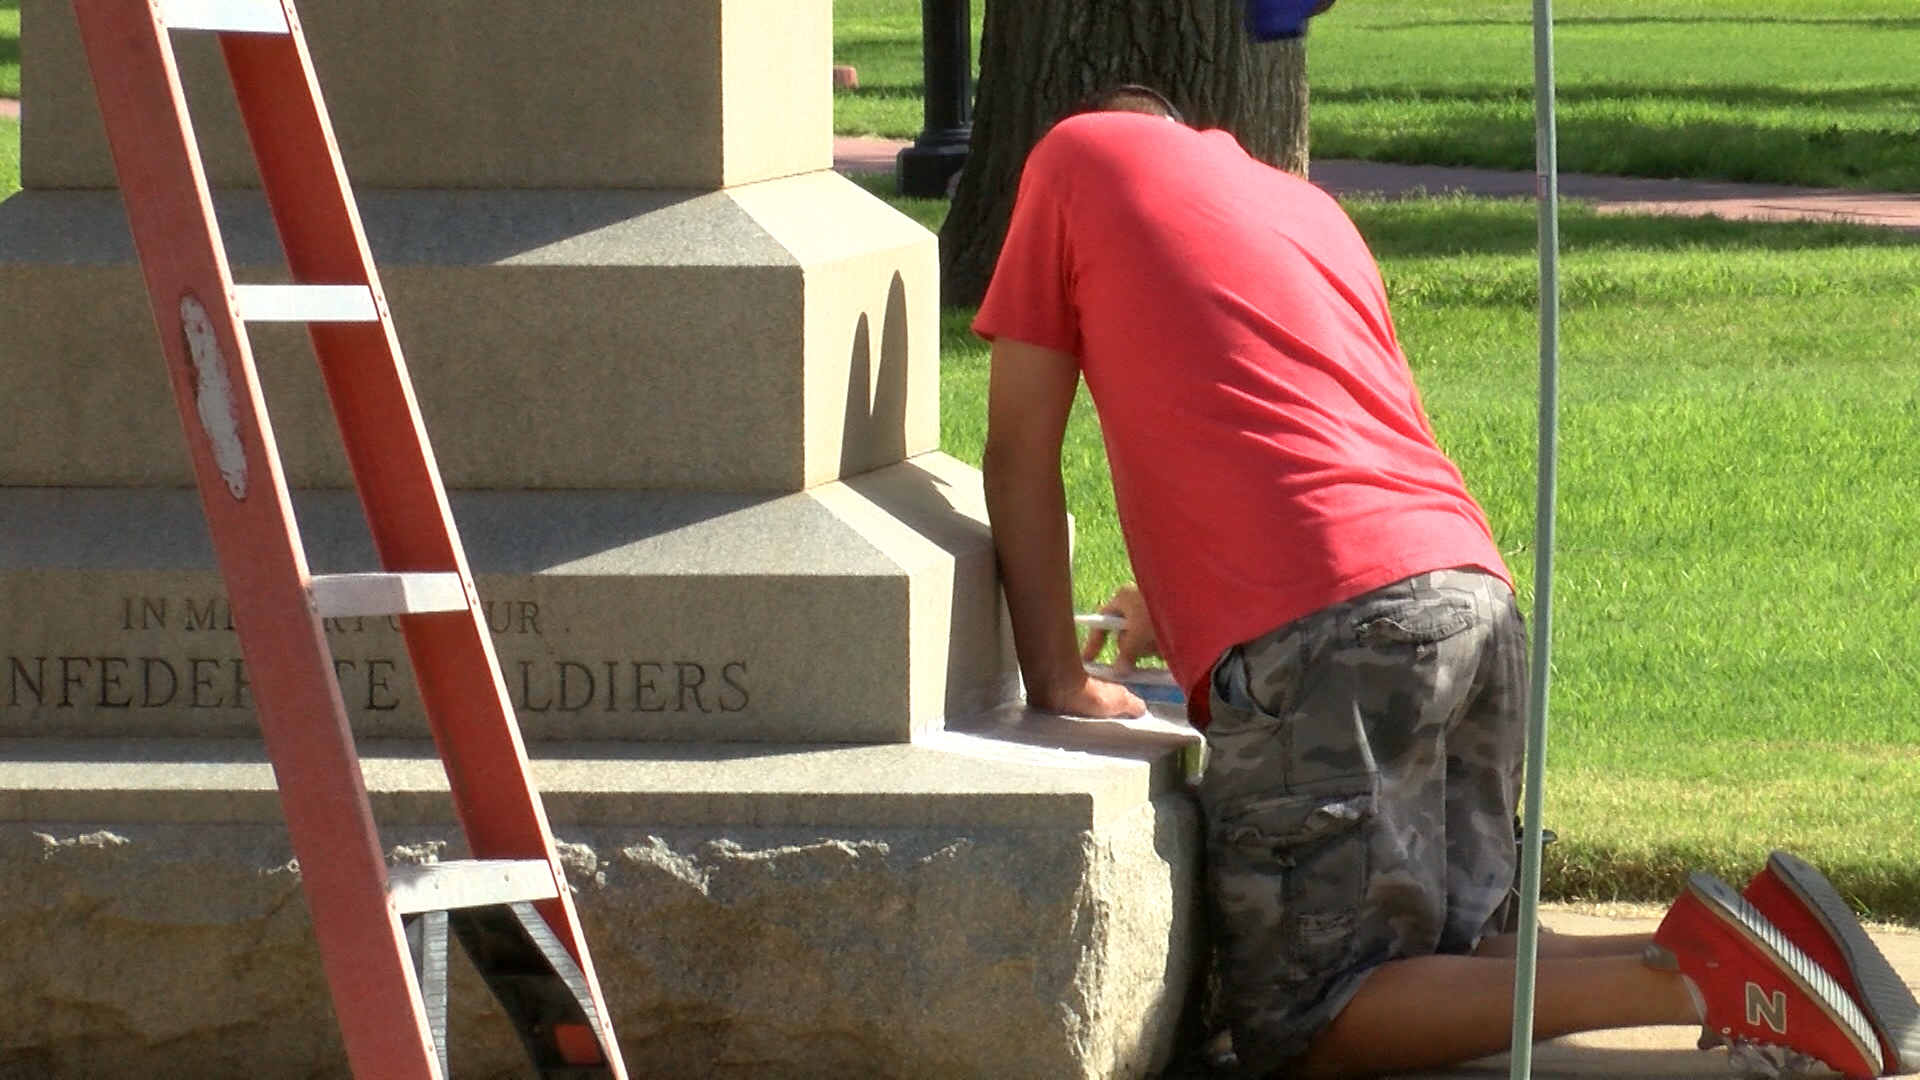 confederate statue cleaning_1503279229752.jpg